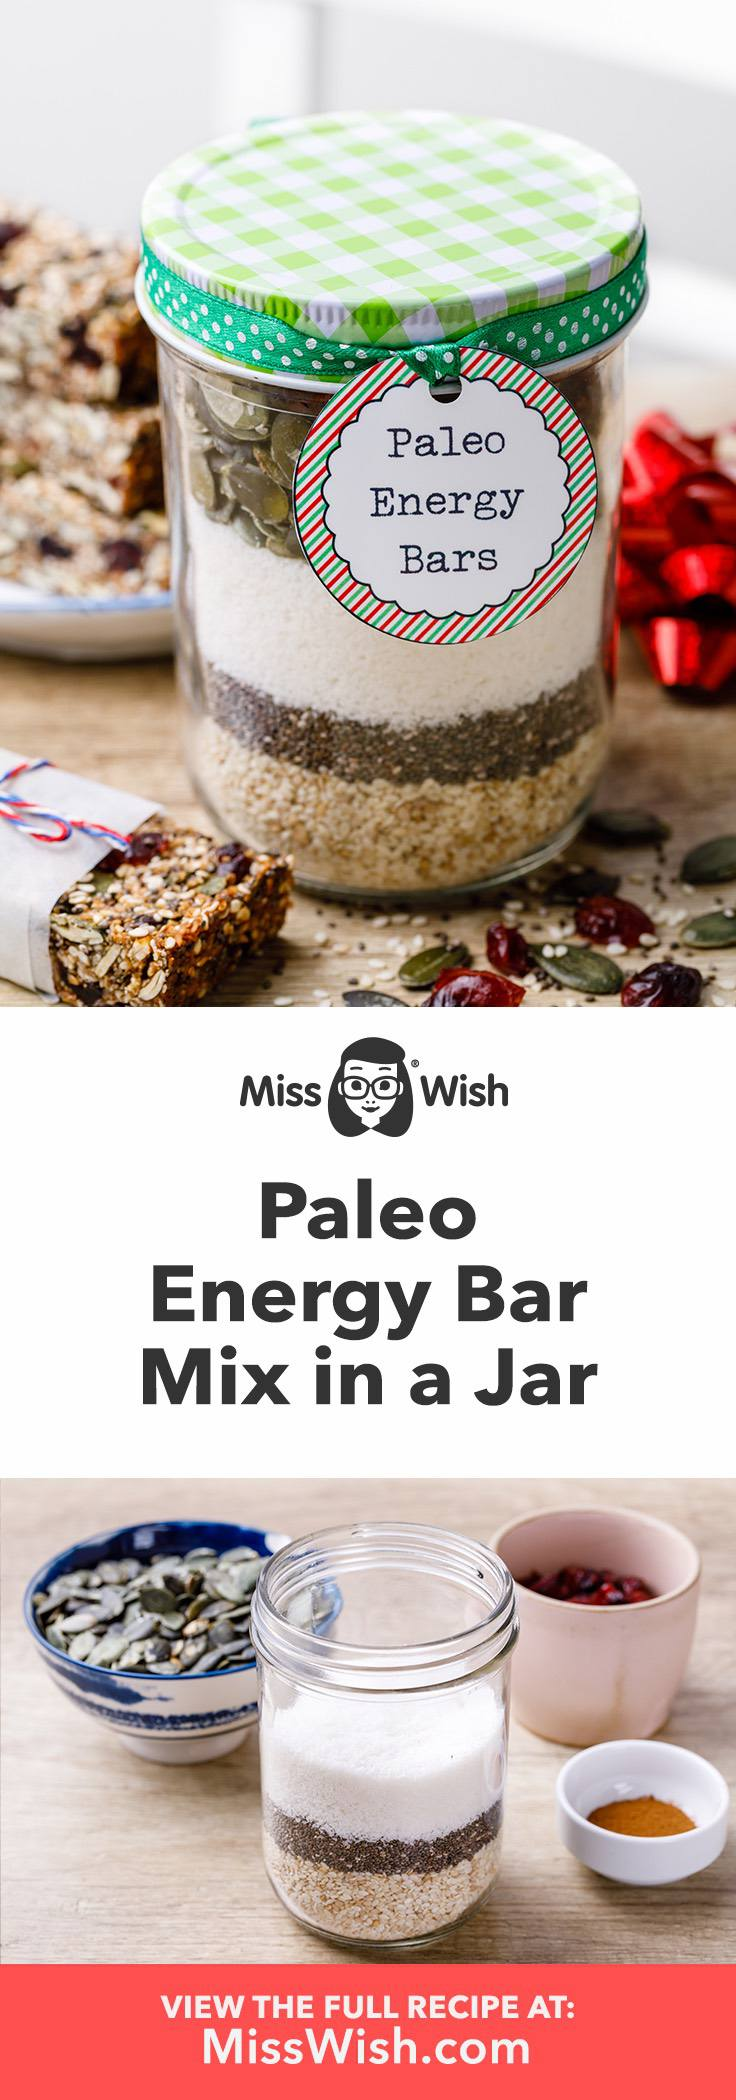 Easy make-ahead paleo energy bar mix.